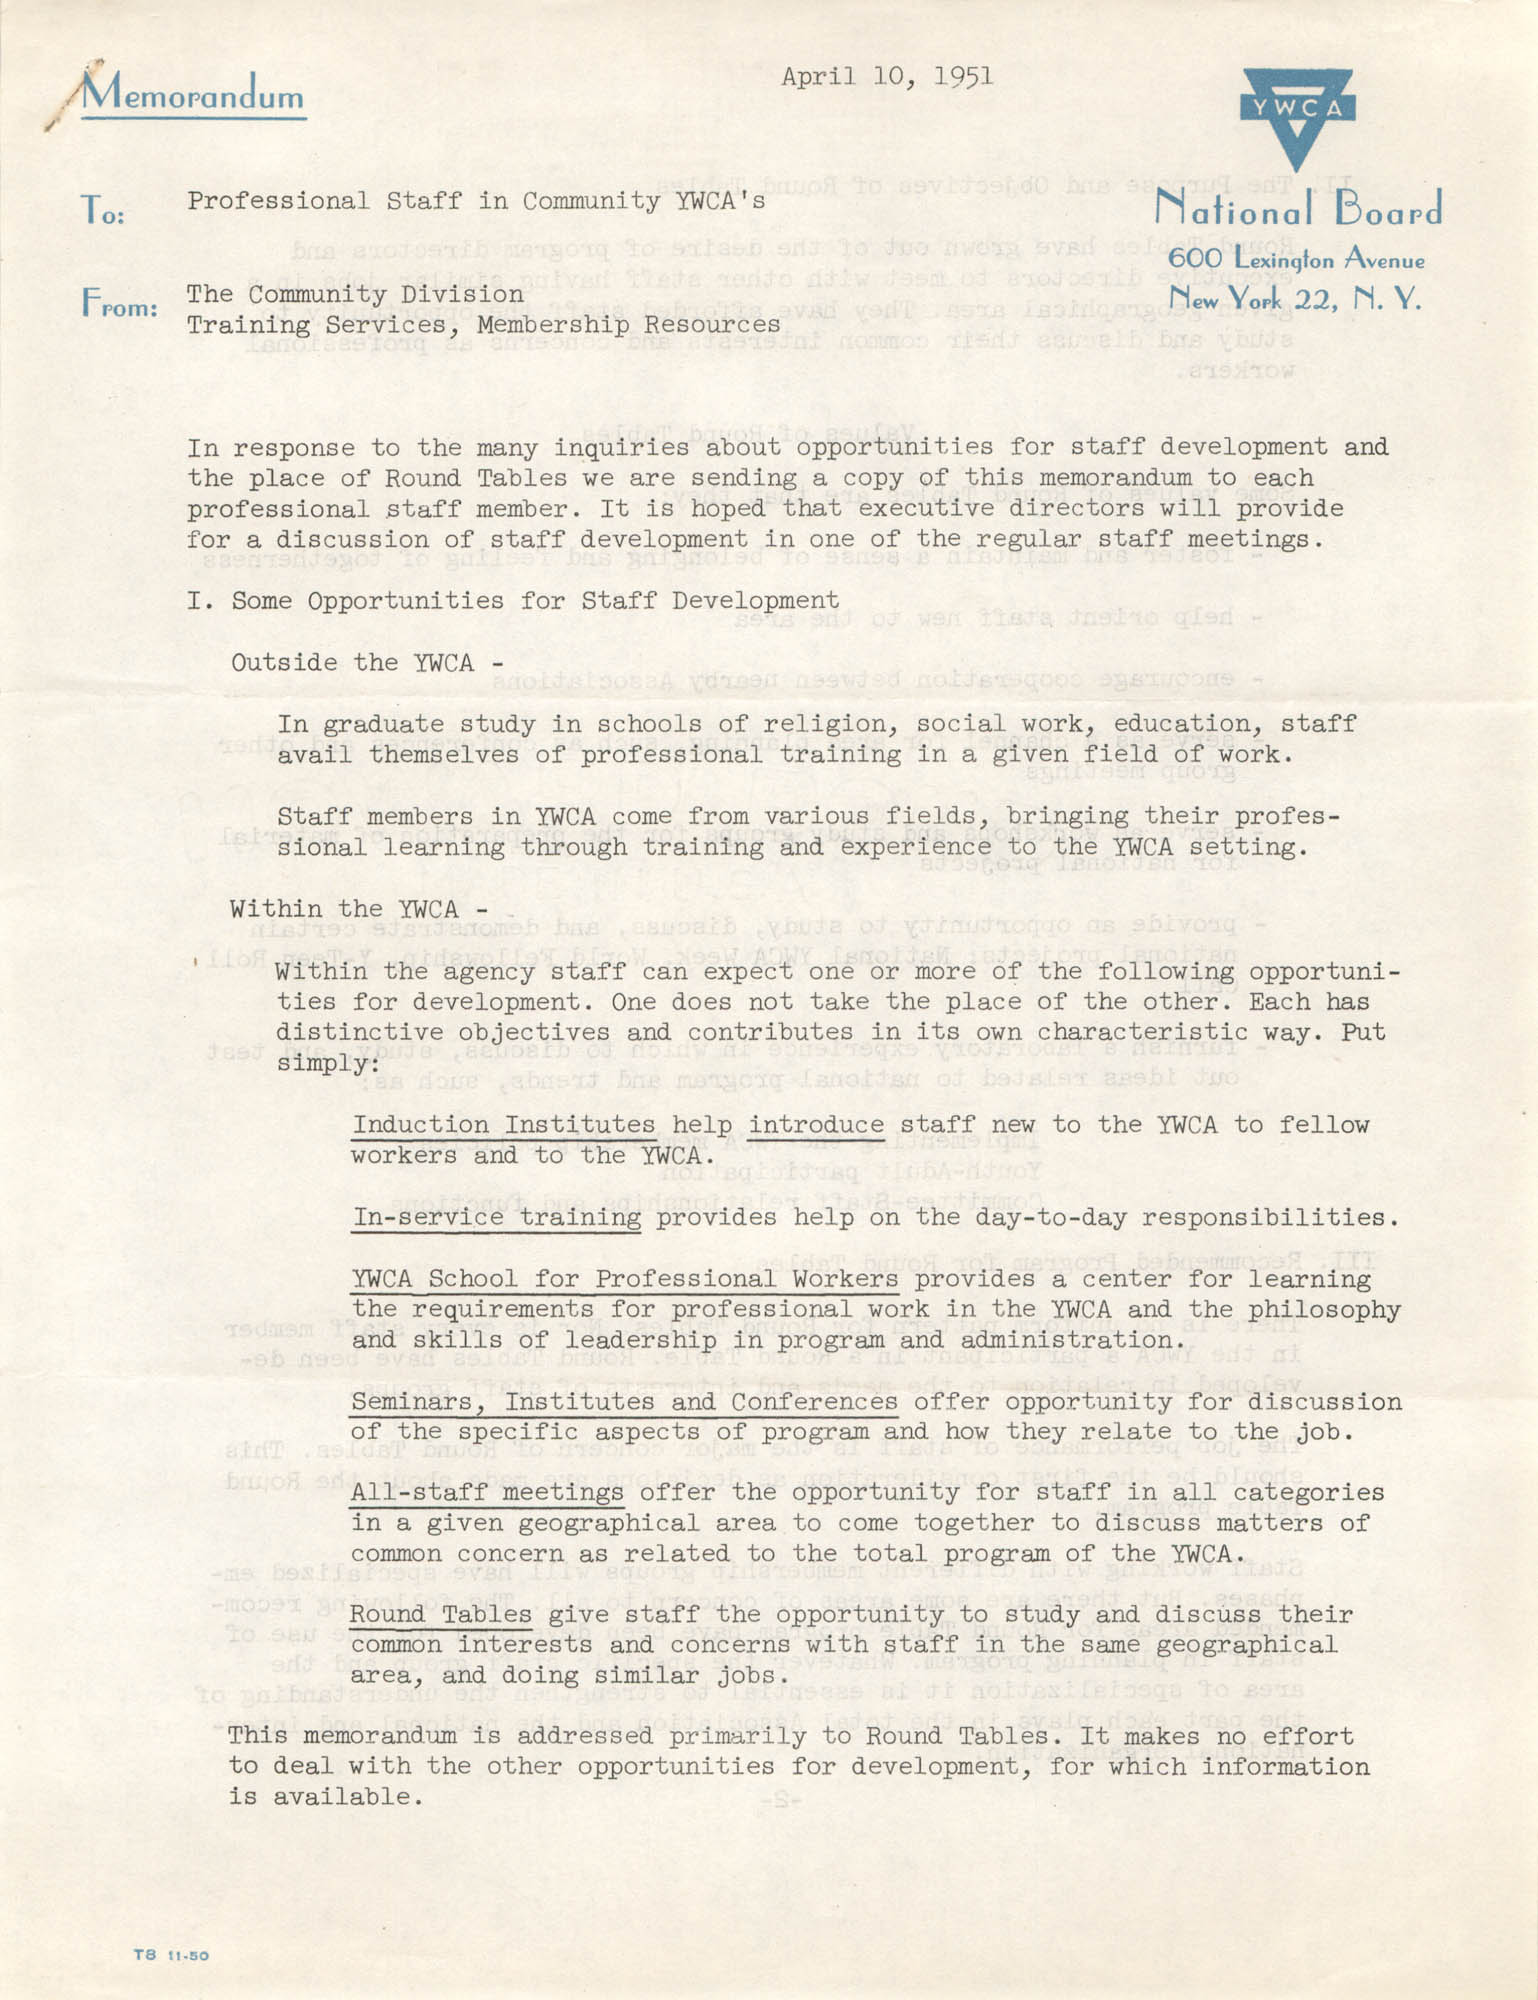 National Board of the Y.W.C.A. Memorandum, April 10, 1951